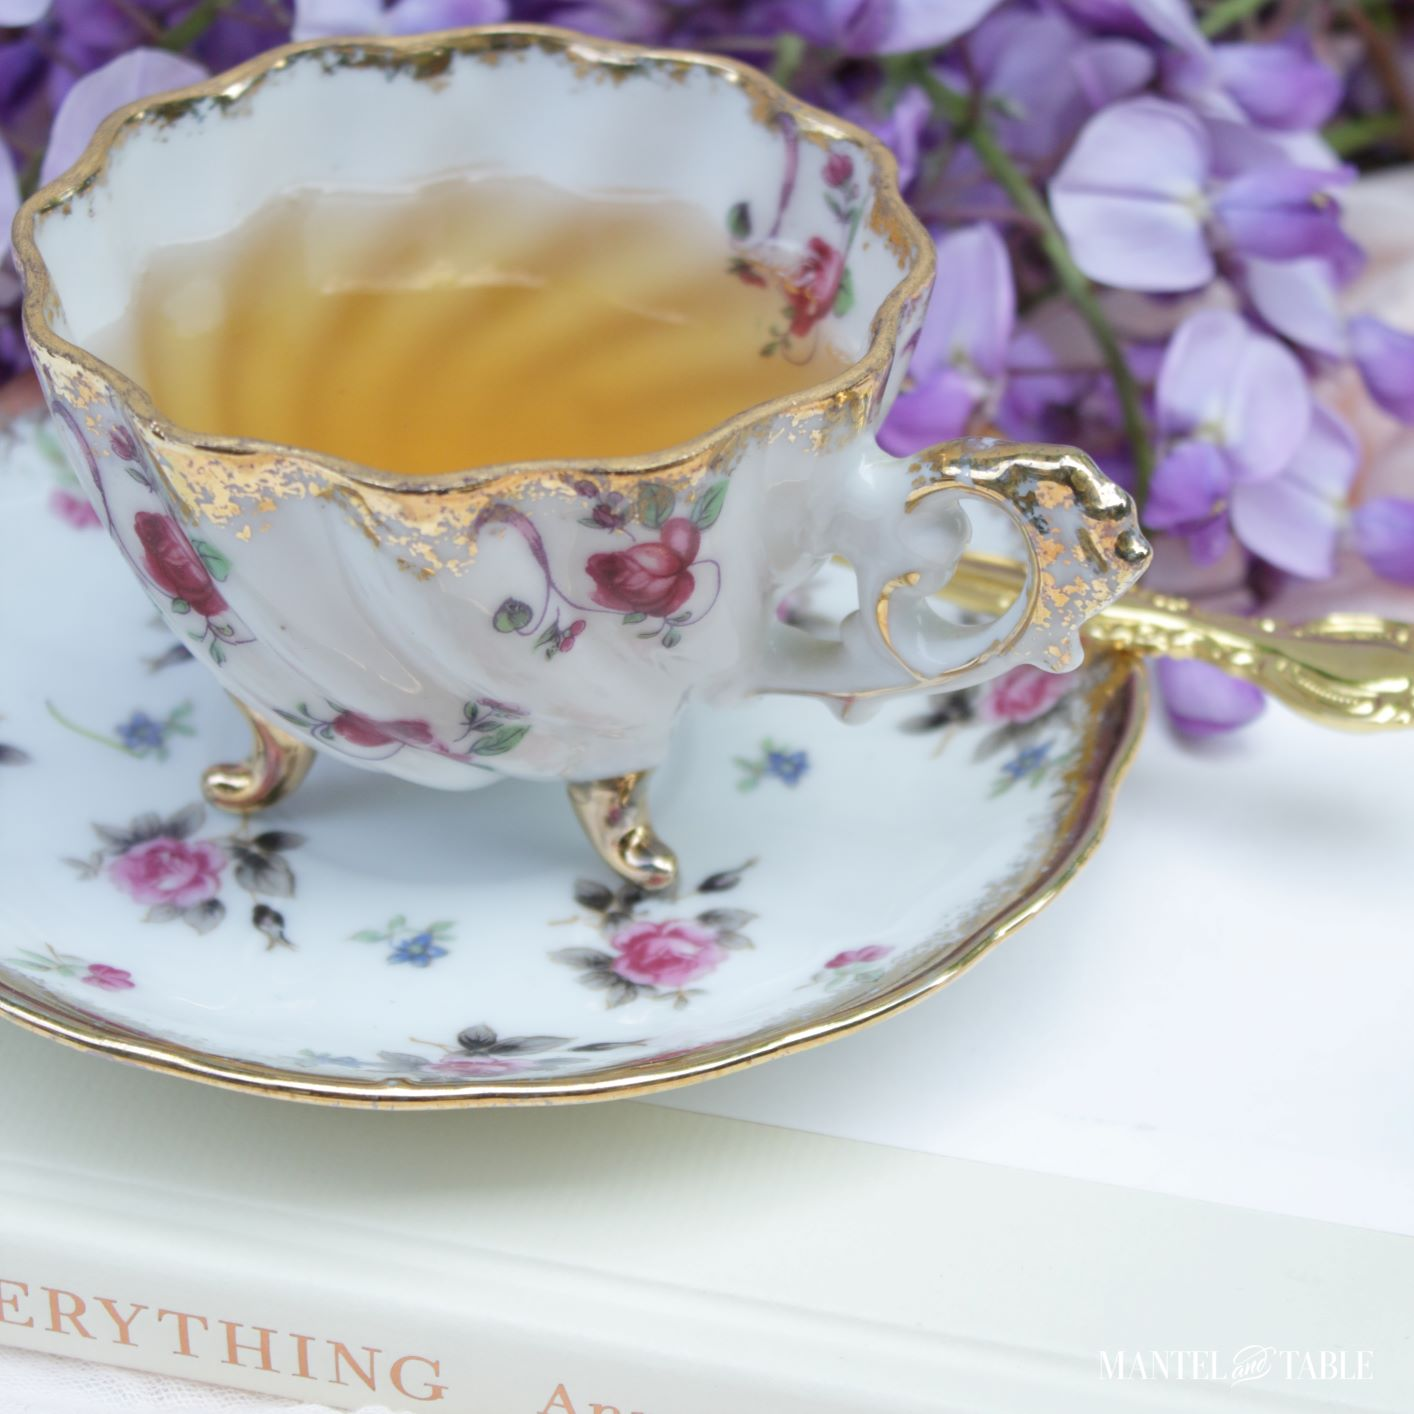 7 Teacup gift ideas ~ Cup with tea viewed from above.